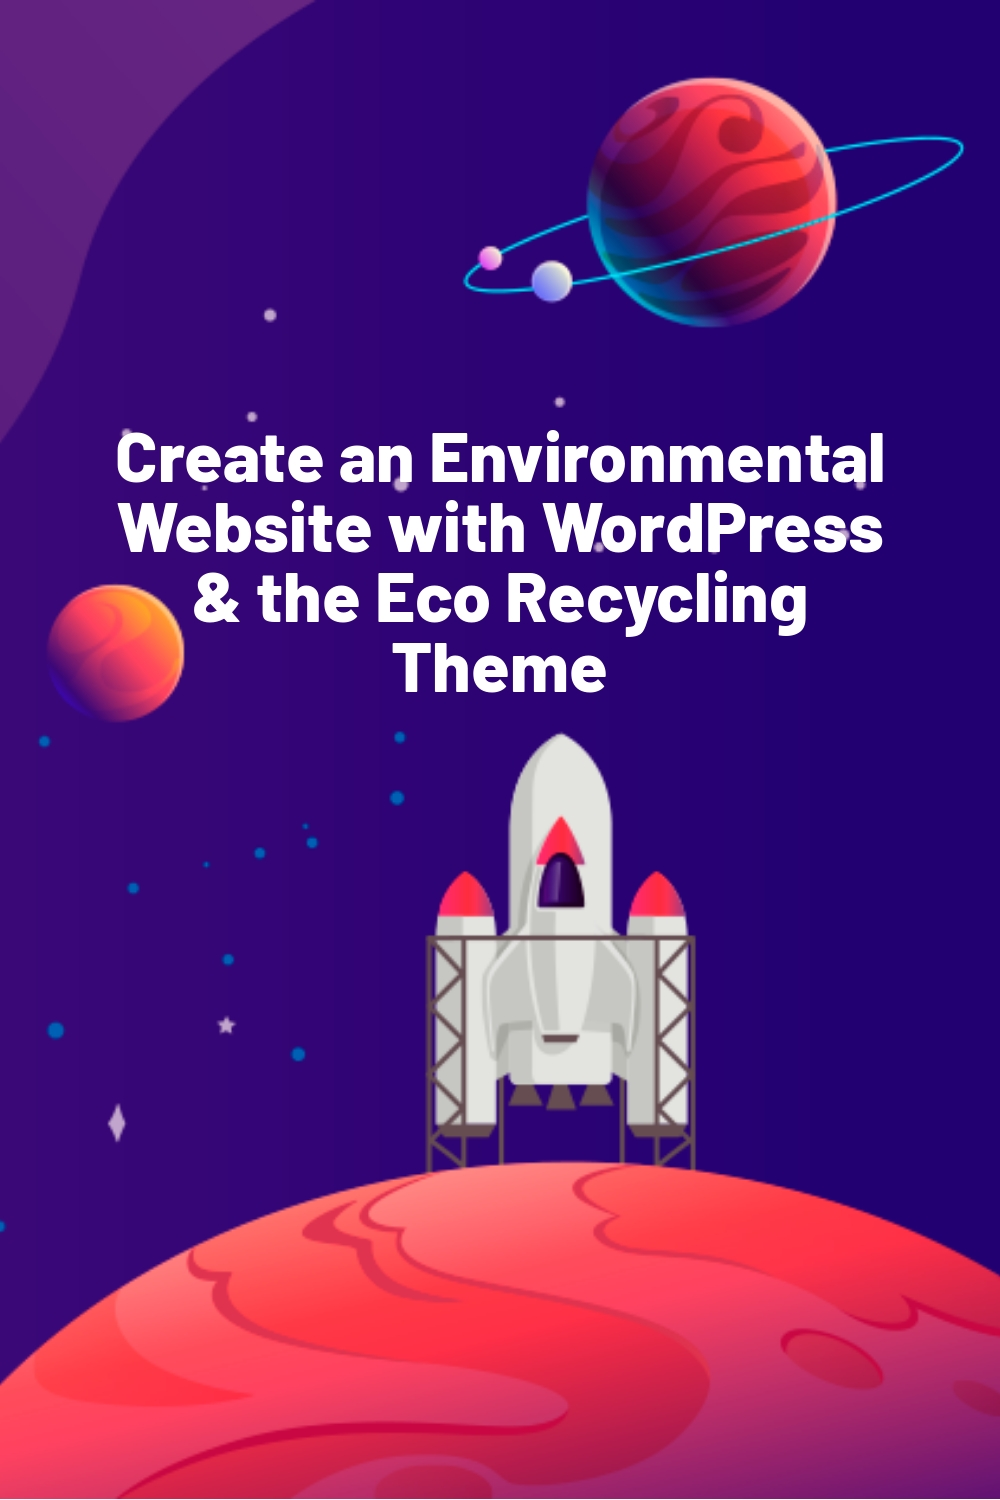 Create an Environmental Website with WordPress & the Eco Recycling Theme